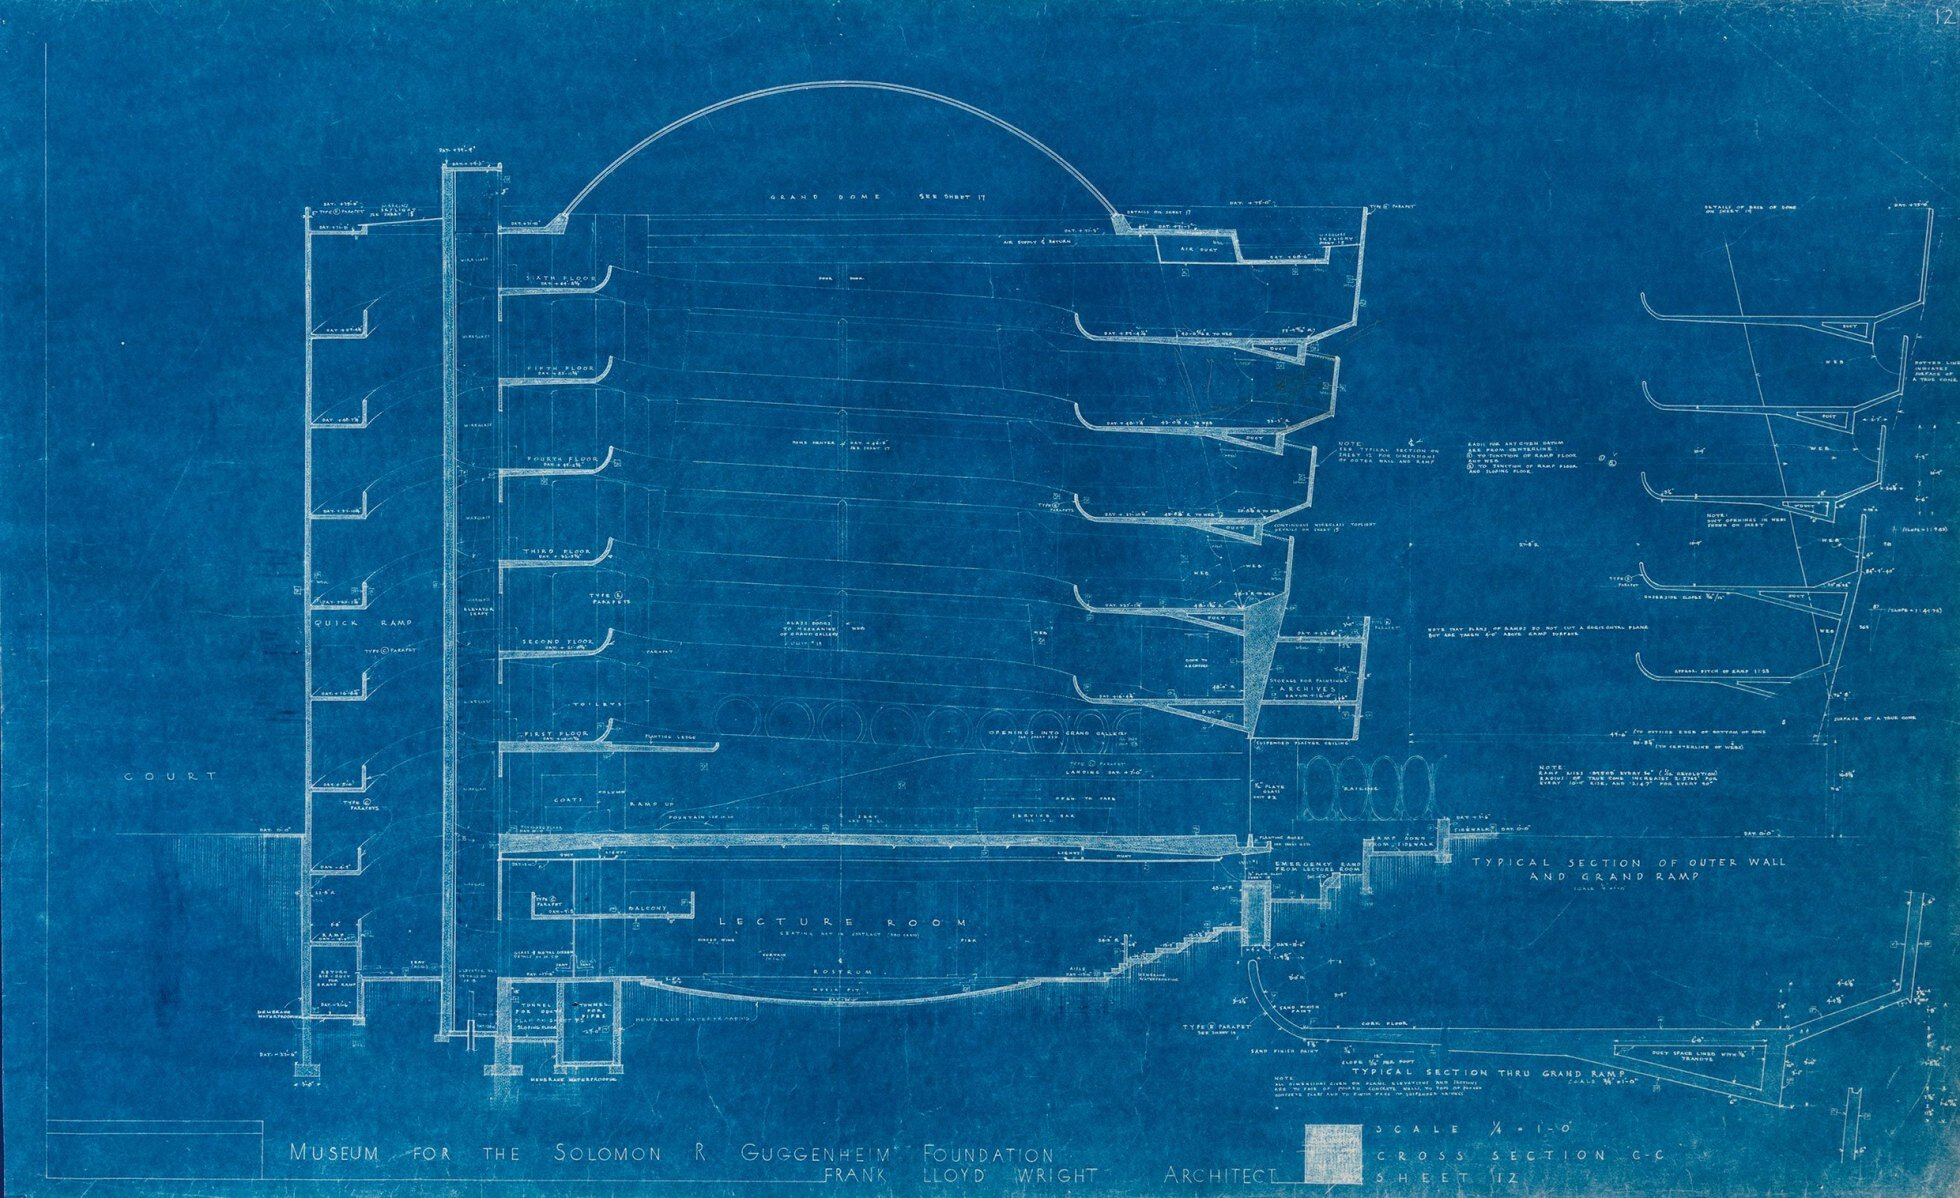 清单flw150-blueprint-cross-section-712.12_ph.jpg